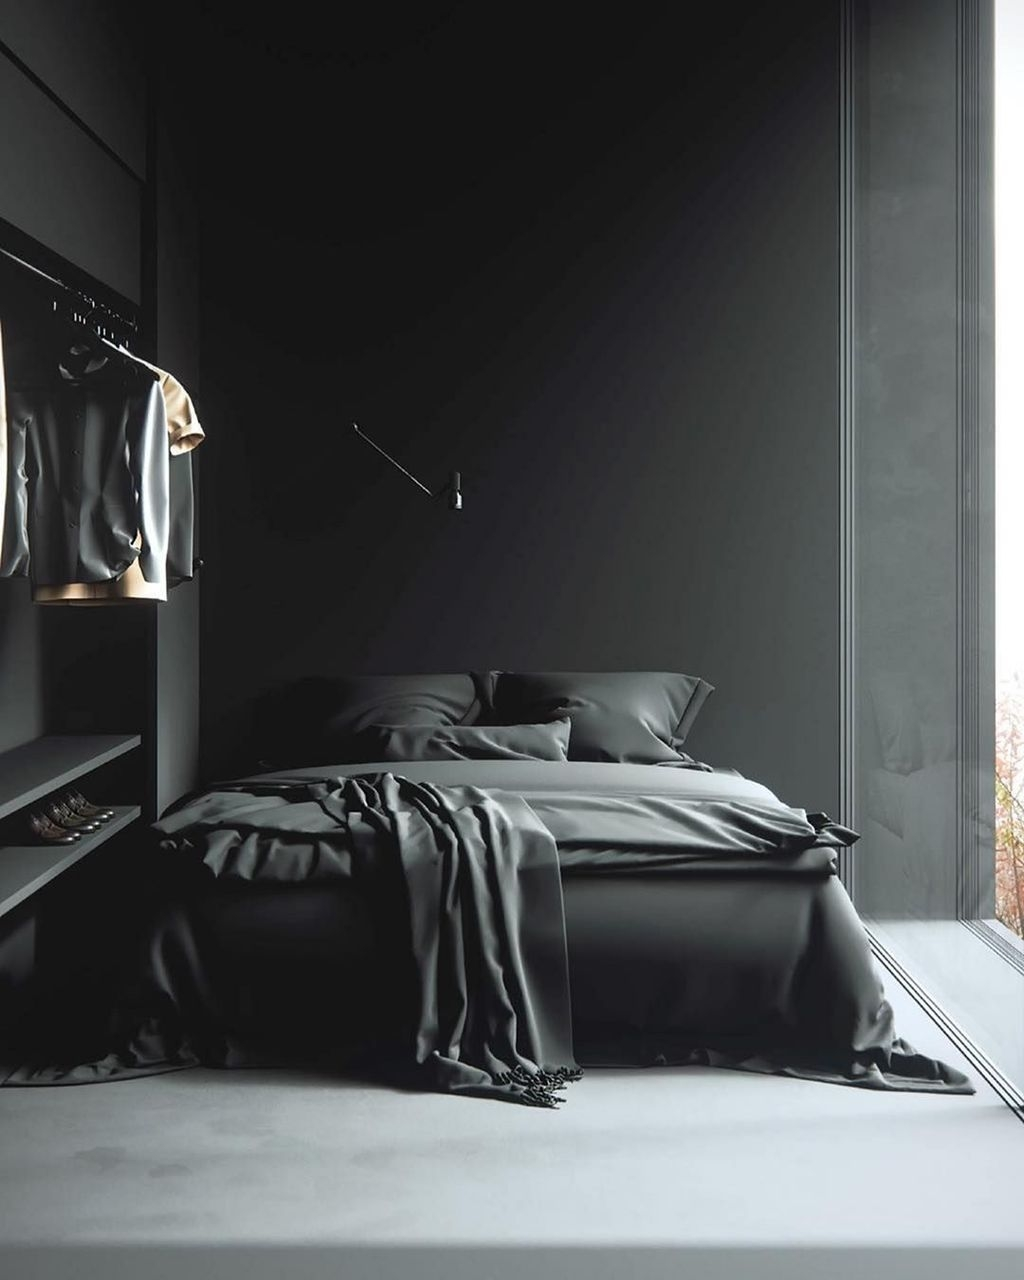 Stylish Bedroom Design Ideas For You To Apply In Your Home06